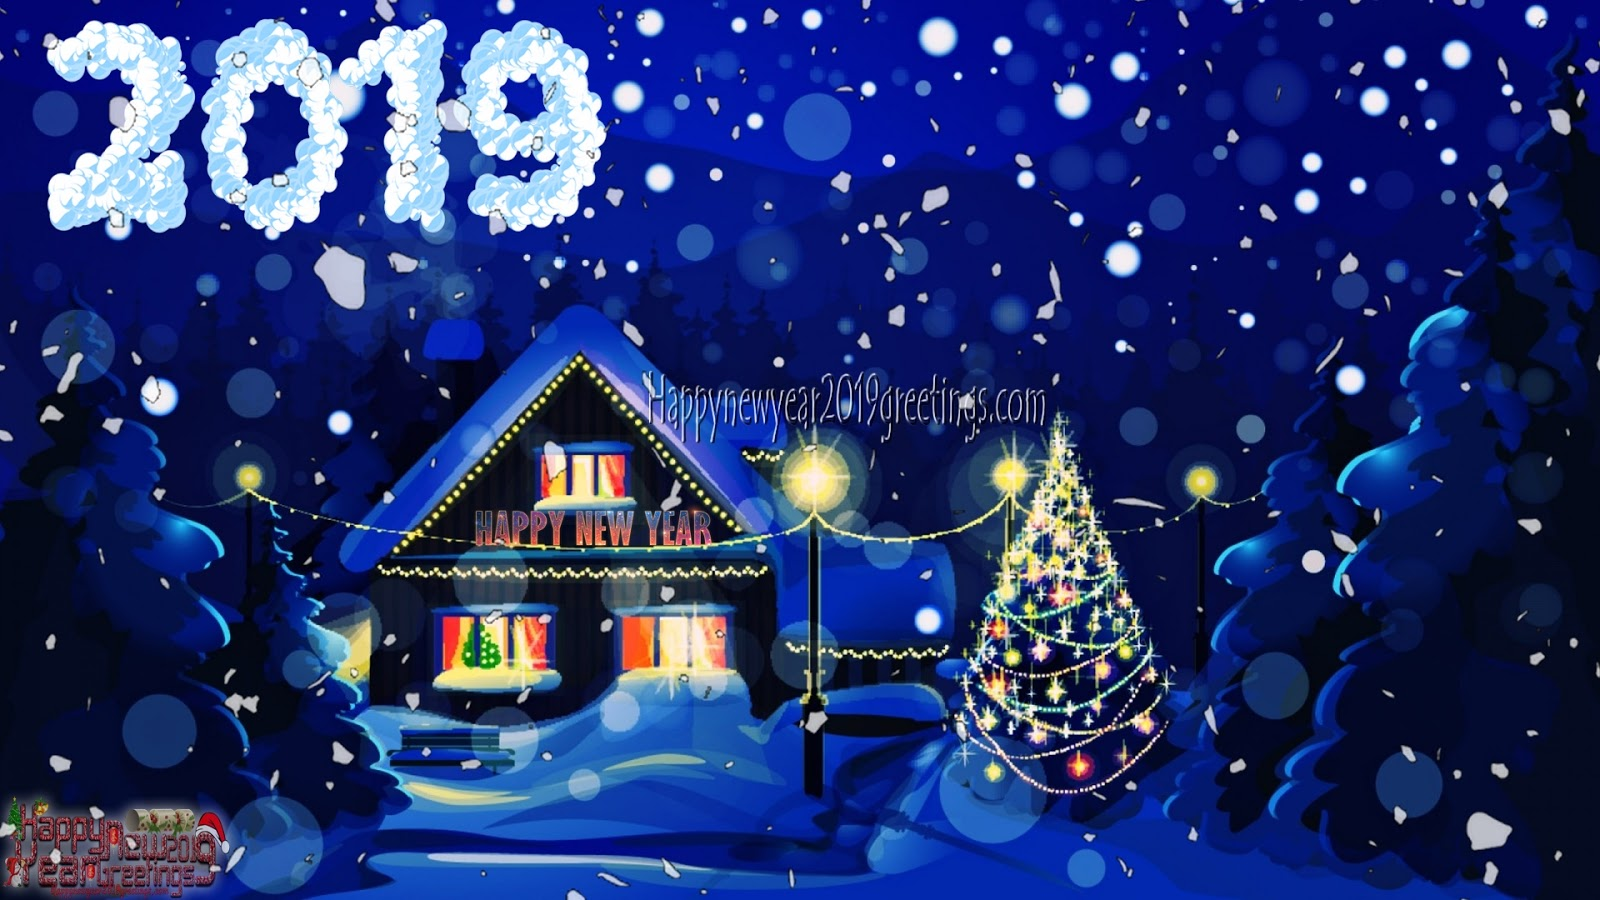 New year wishes vectors, photos and psd files | free download.